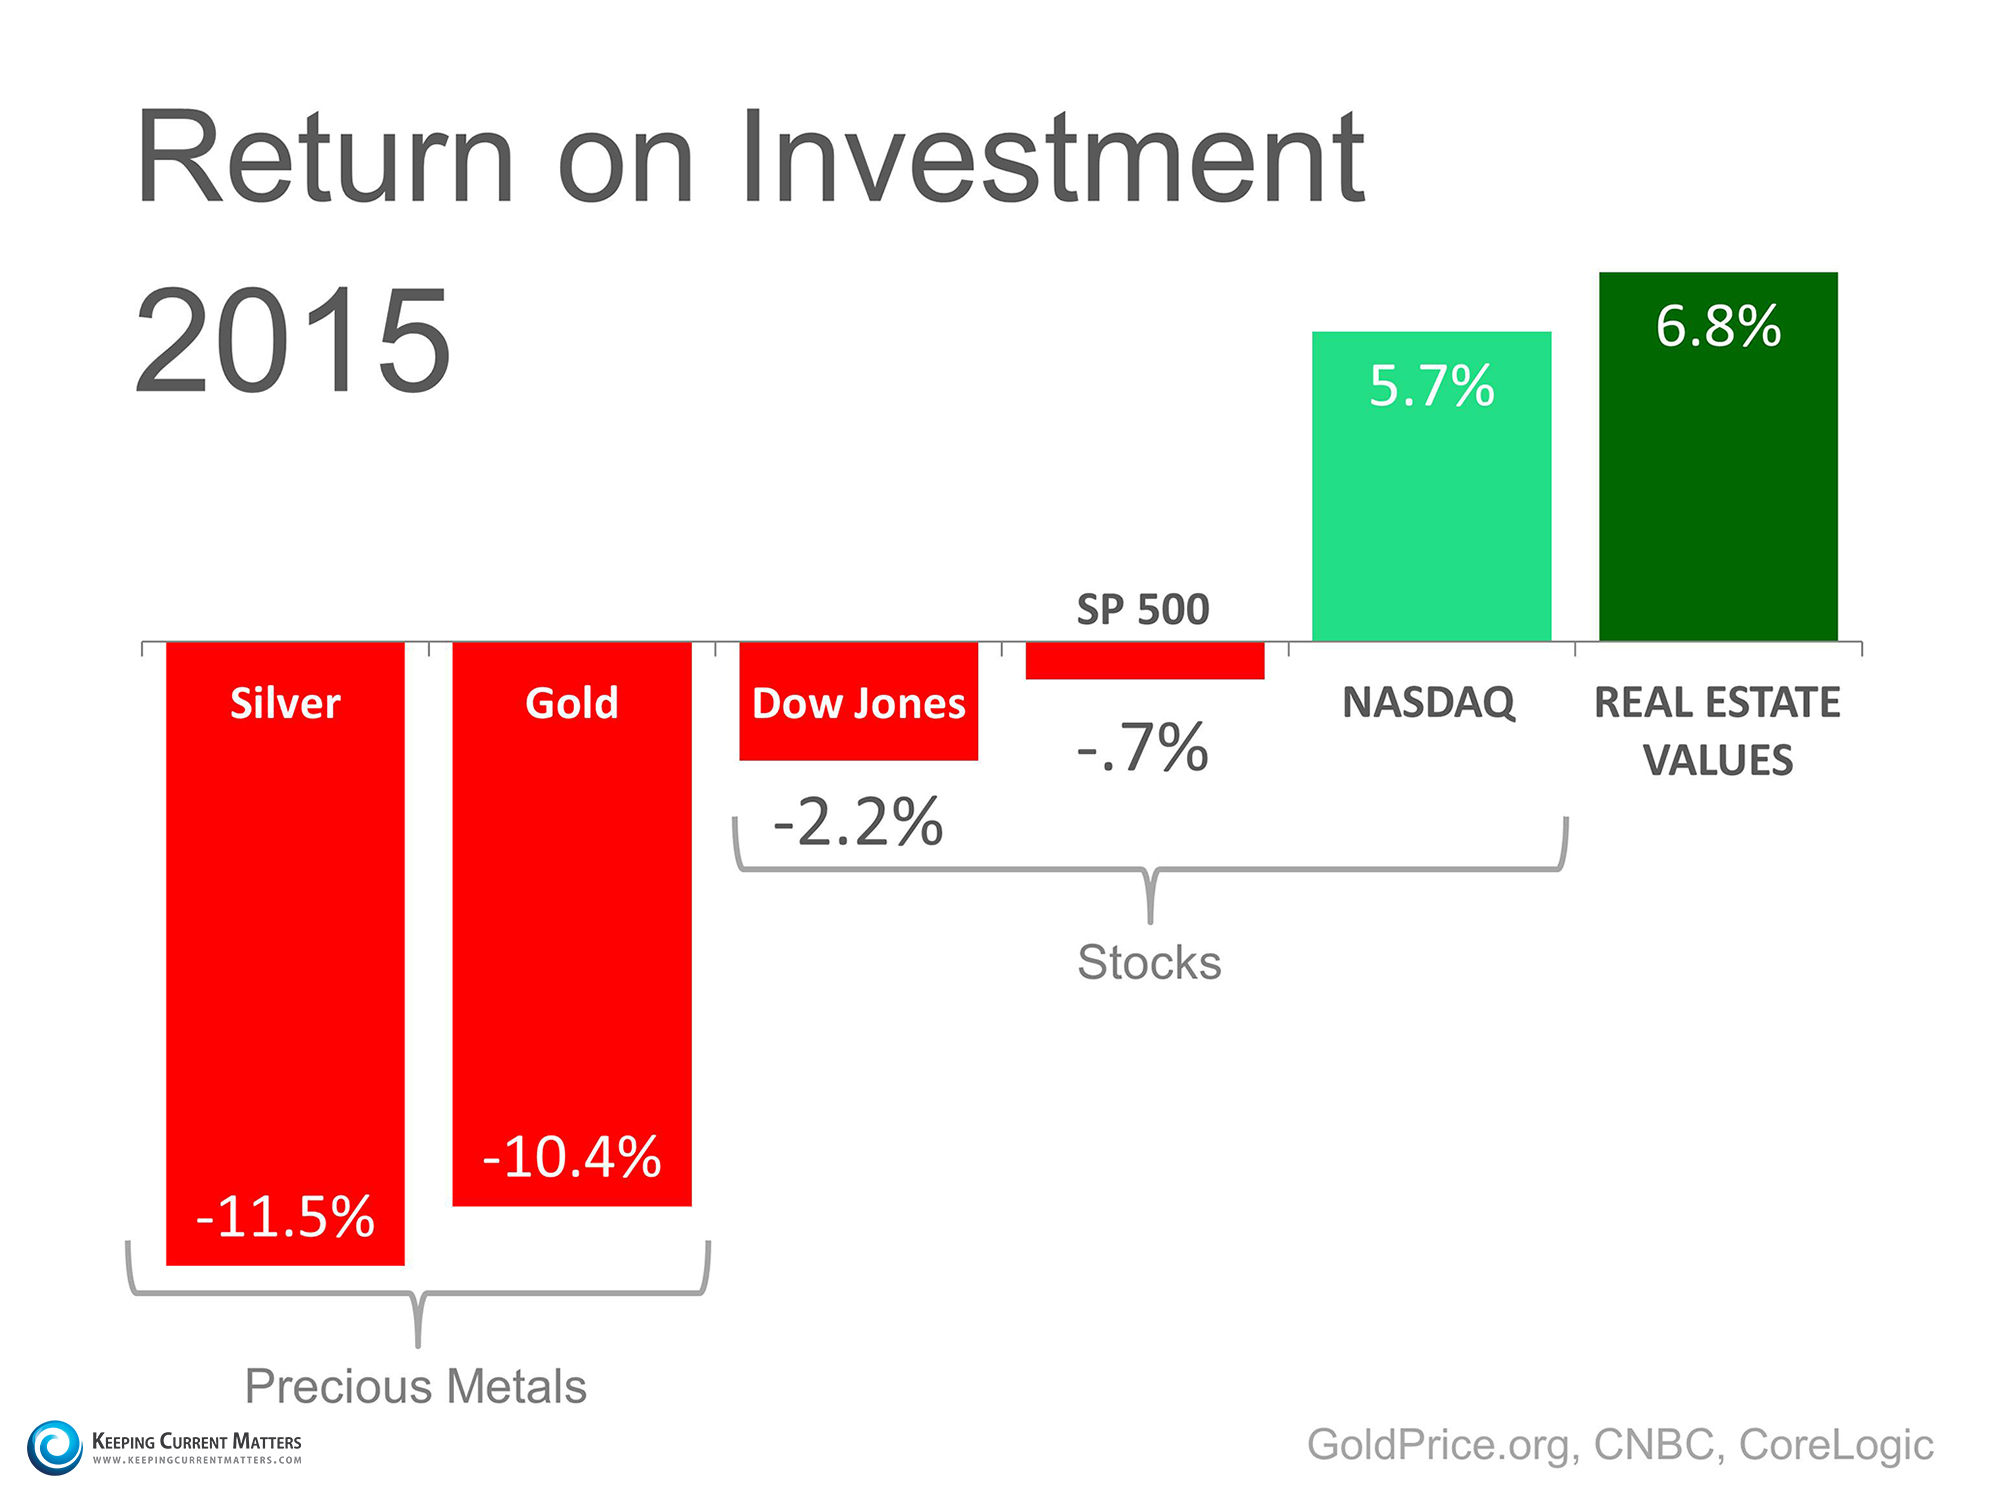 2015 Return on Investment | Keeping Current Matters